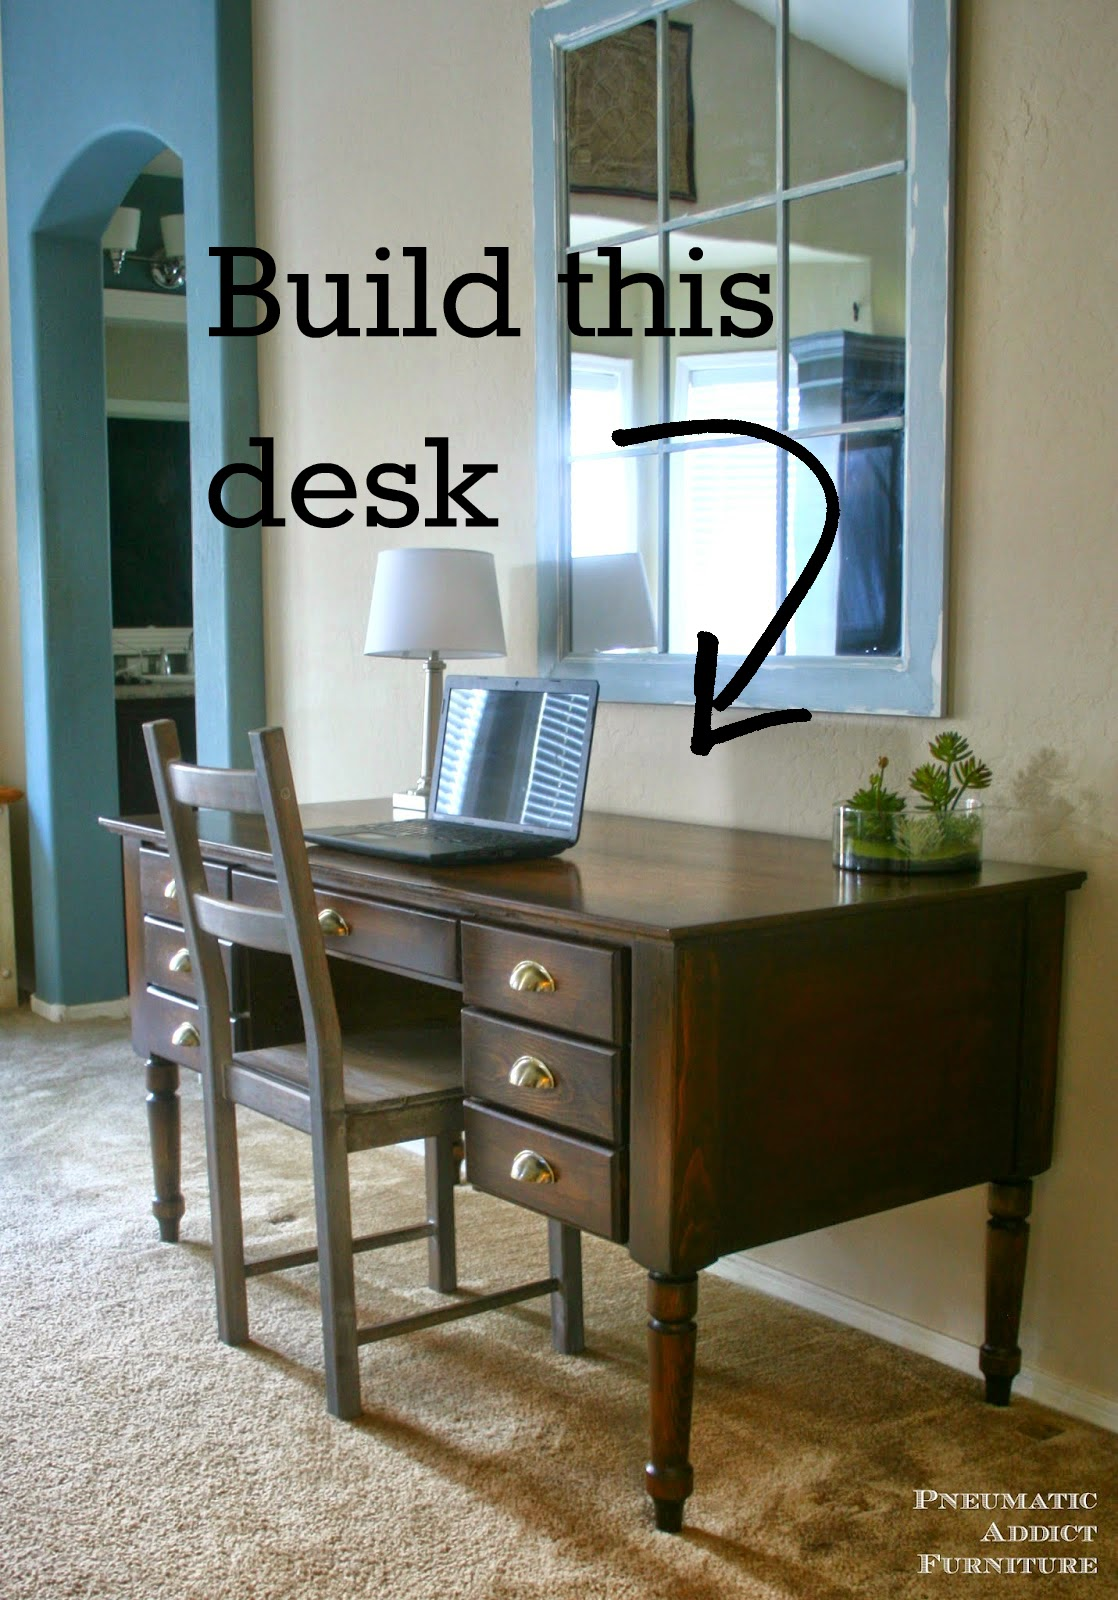 Pneumatic Addict Pottery Barn Printer S Keyhole Desk